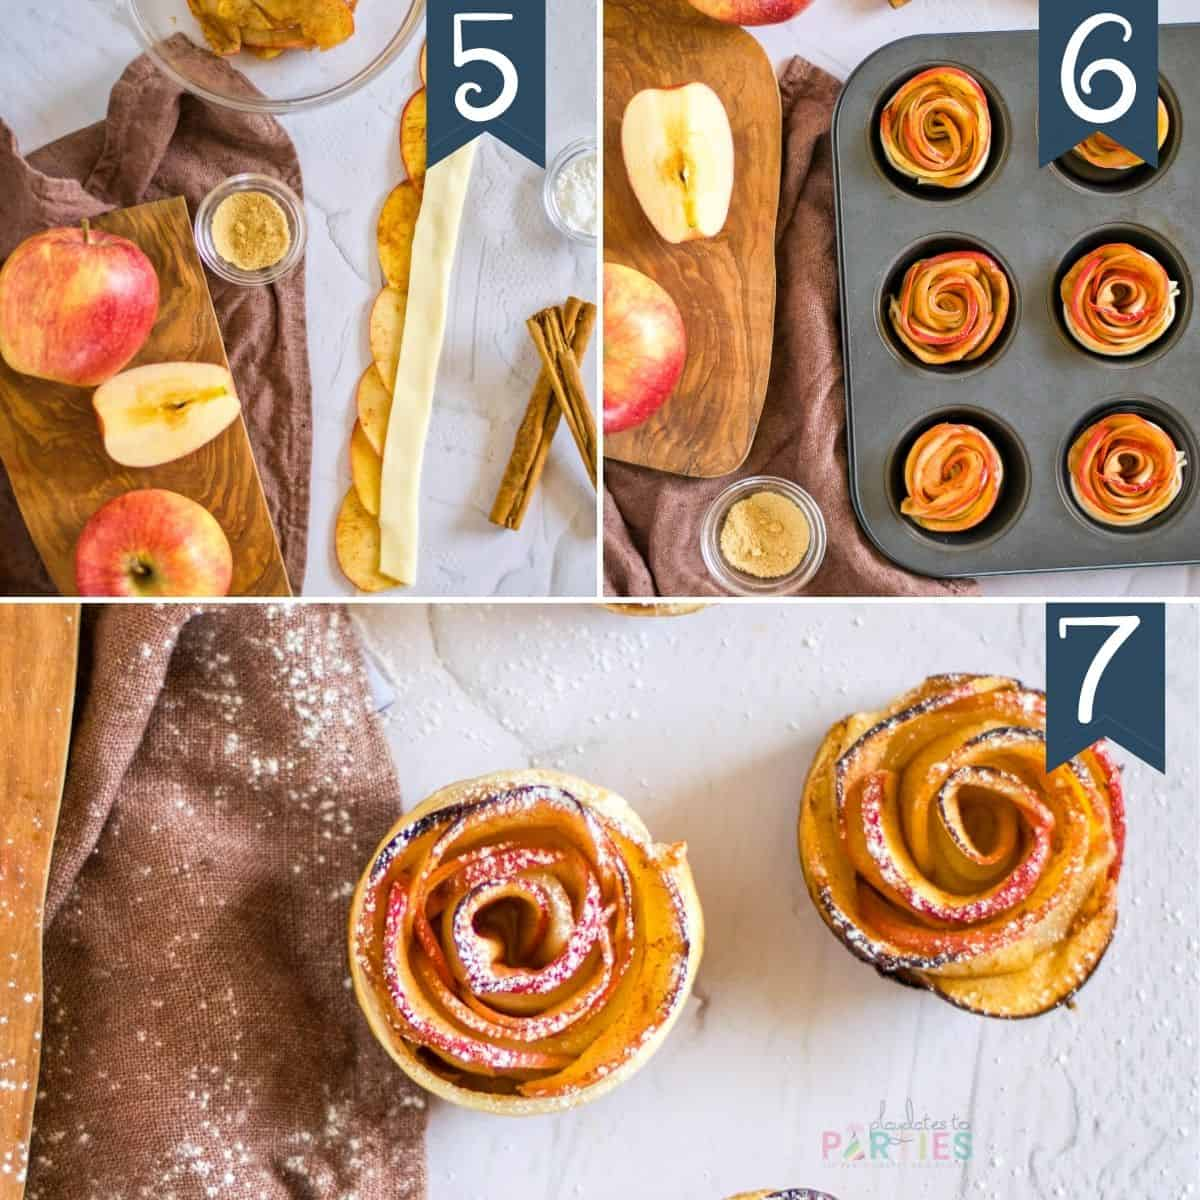 how to make apple roses steps 5-7